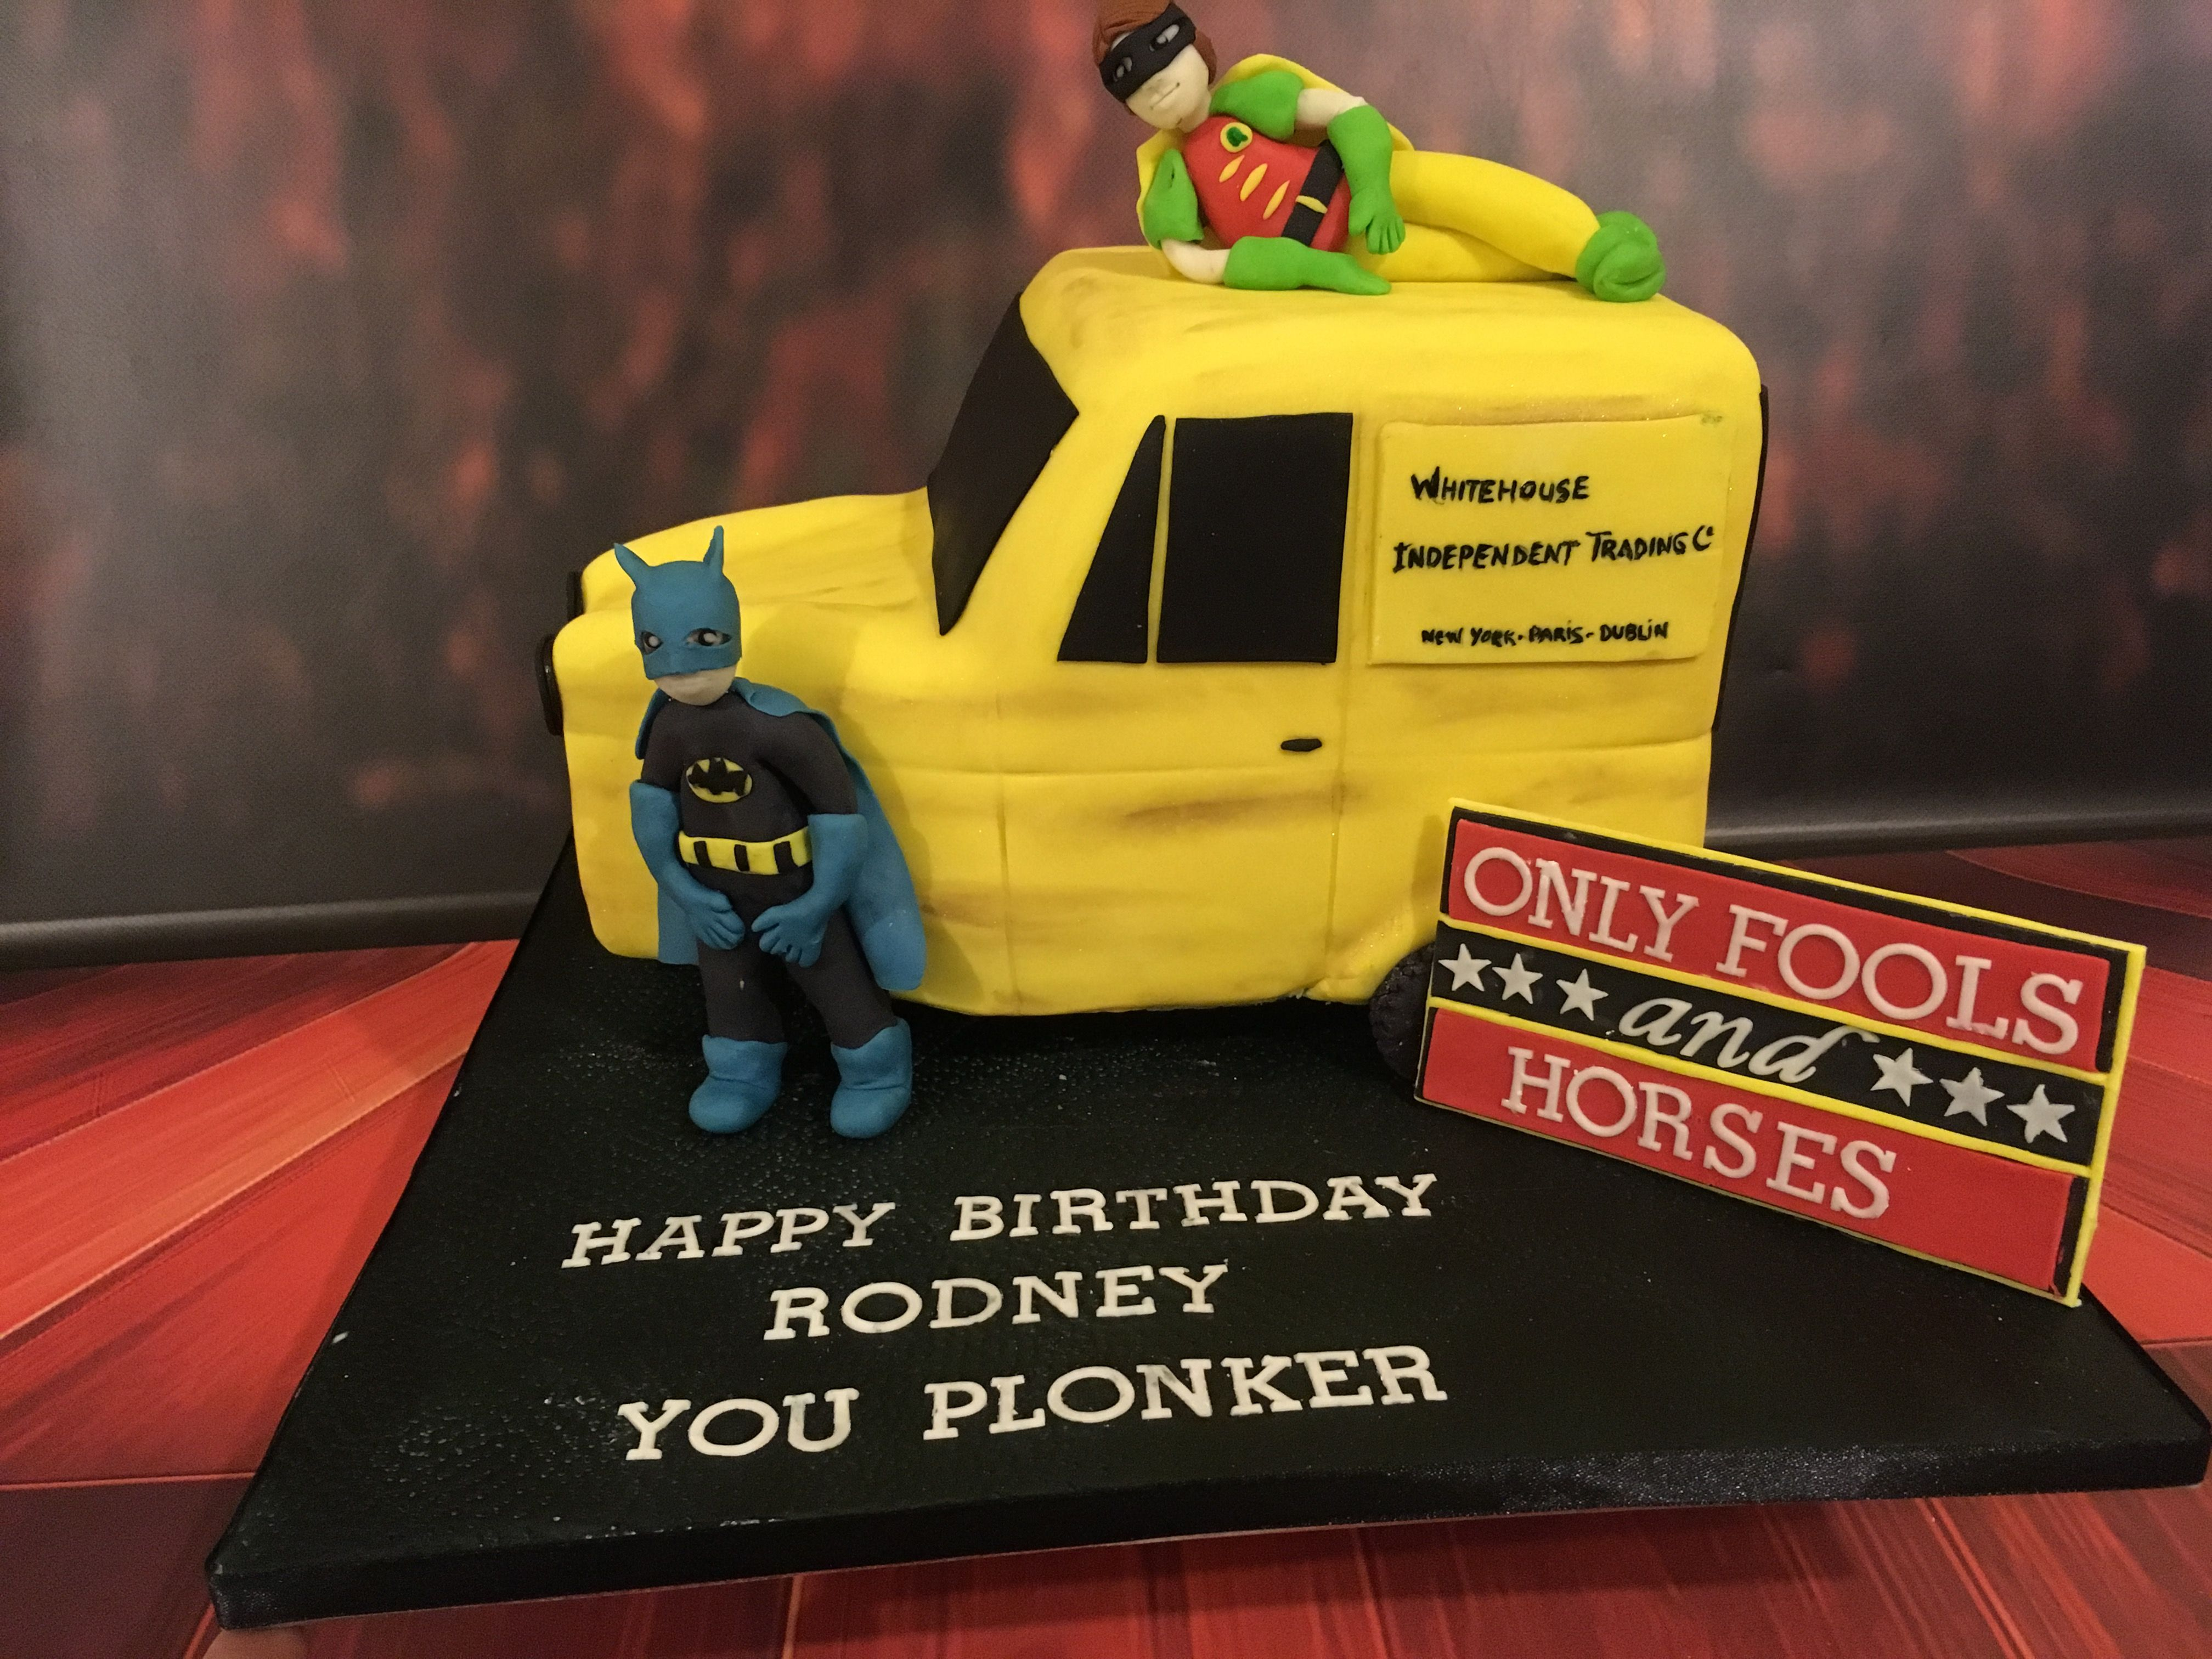 Only Fools and Horses Cake.